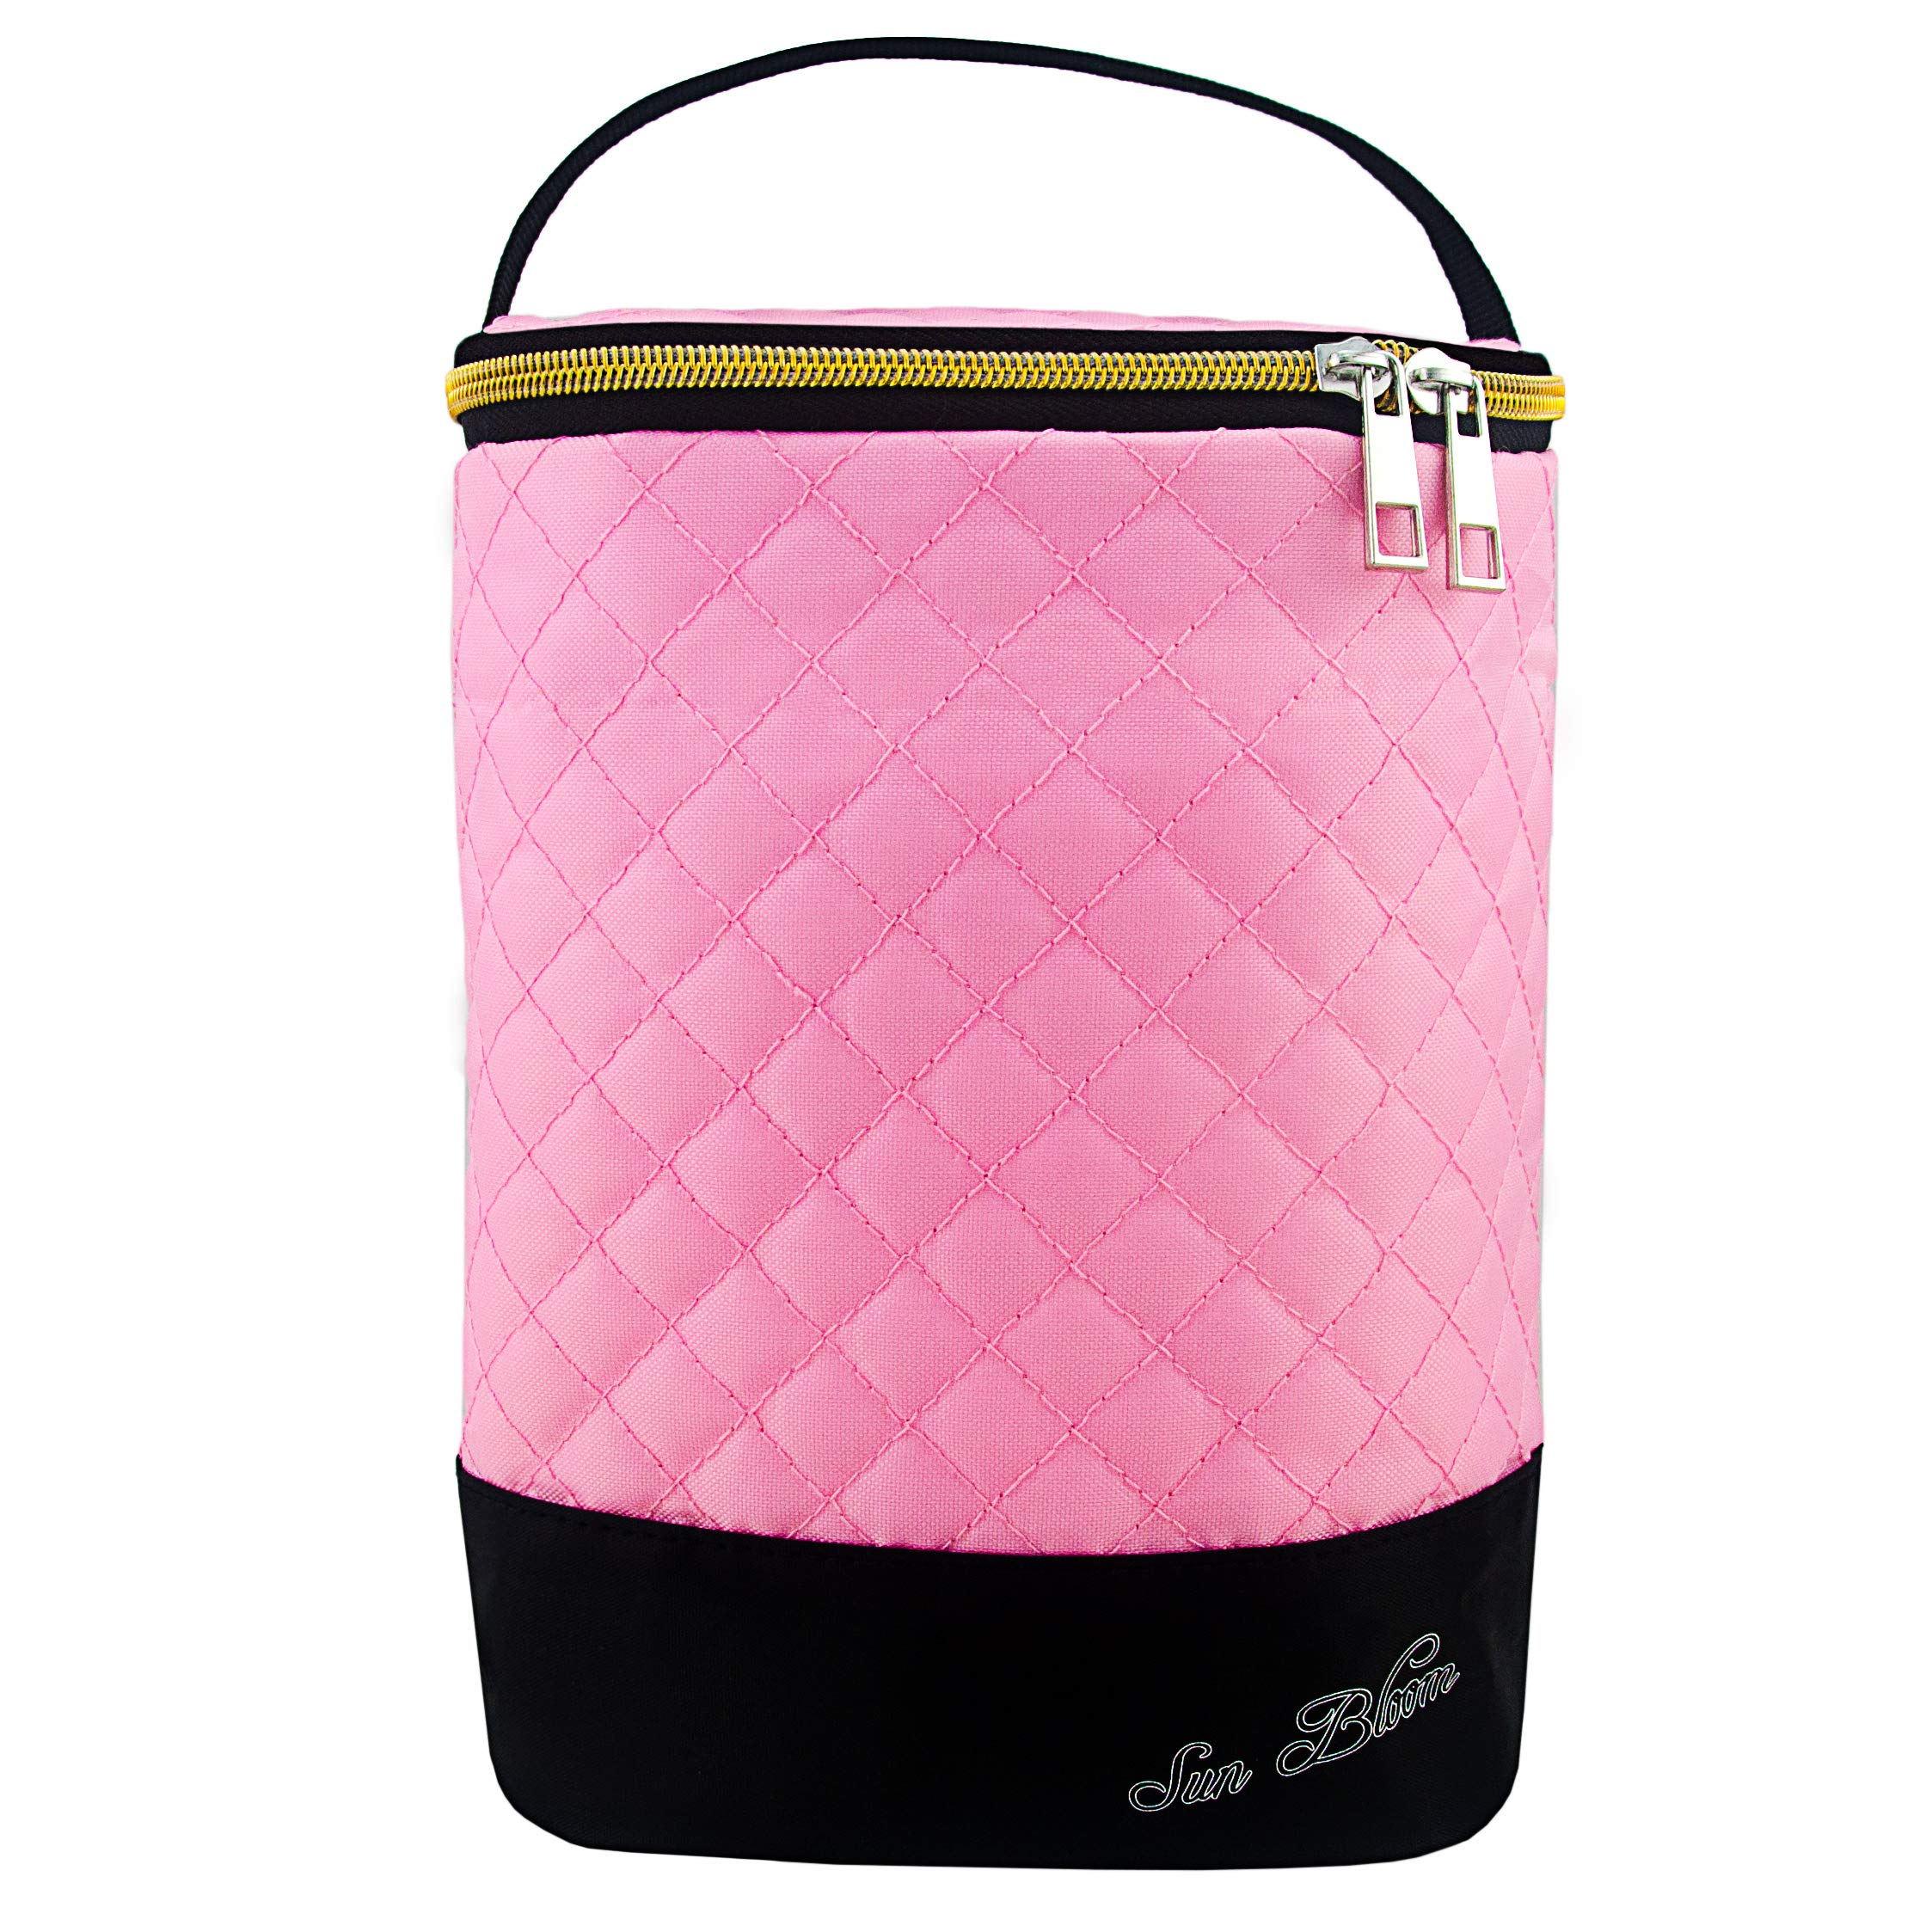 Sun Bloom Insulated Baby Bottle Breast Milk Storage Cooler Bag (Pink, 2 Bottles) by Sun Bloom